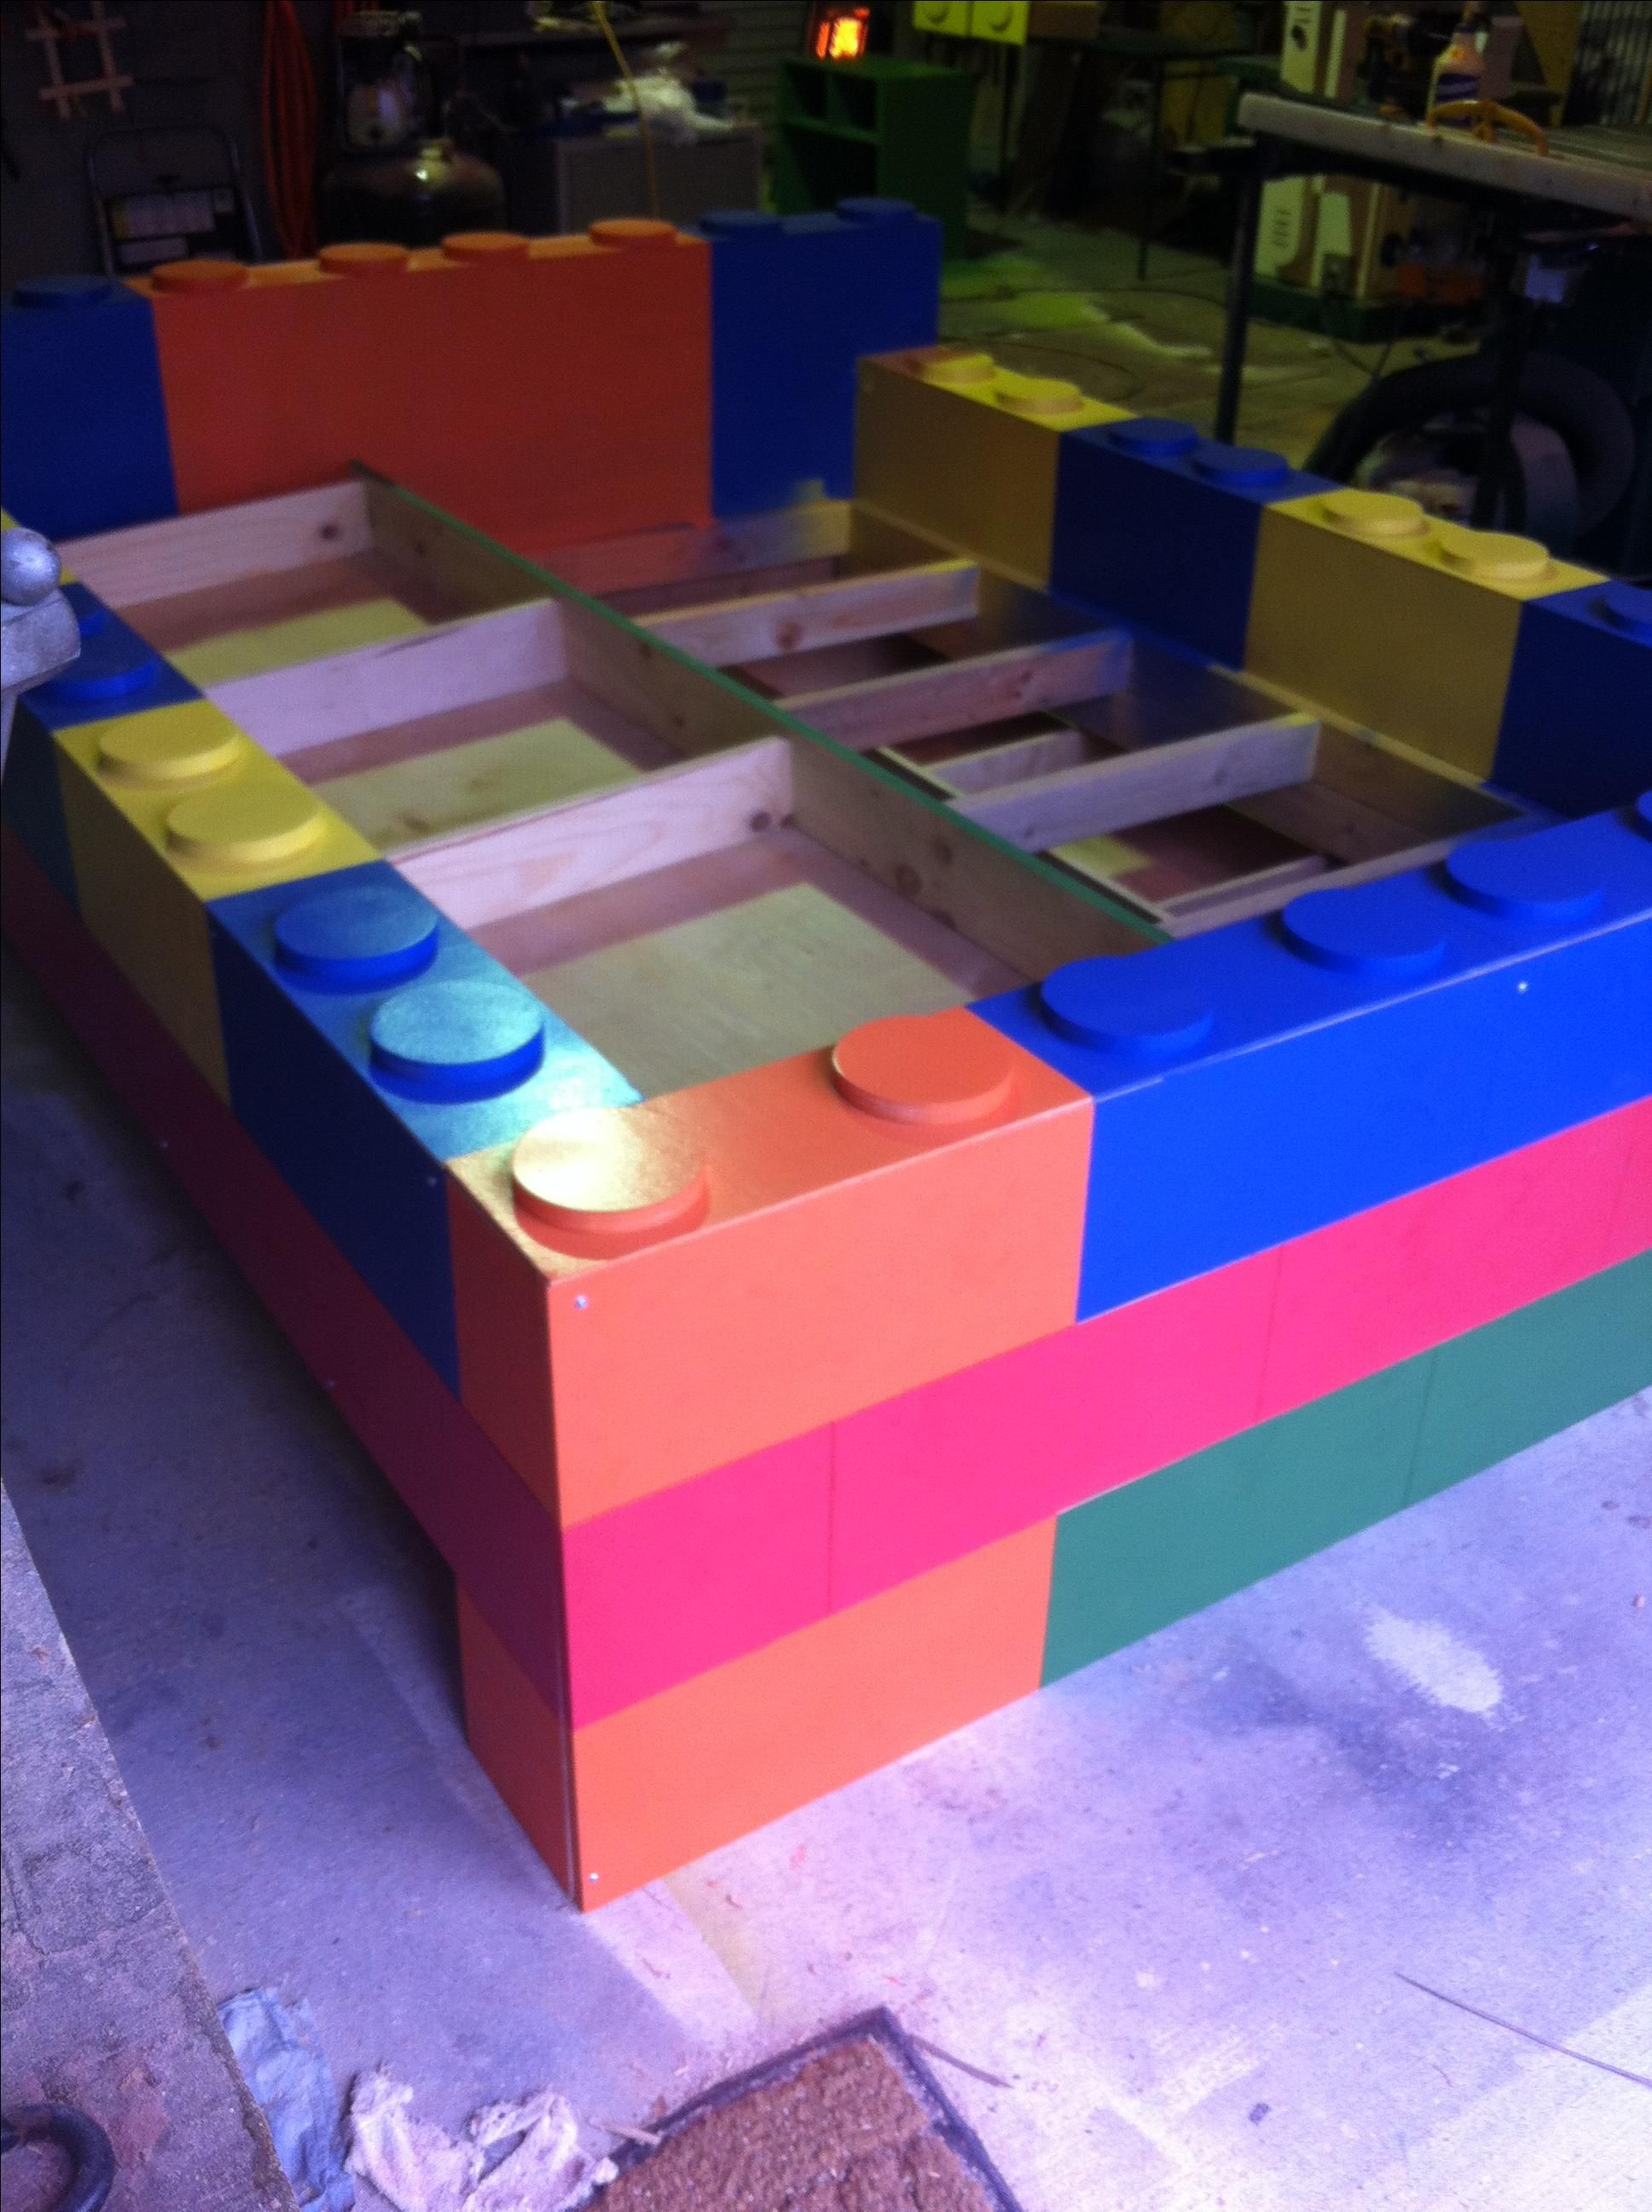 Buy A Handmade Lego Bed For Kids Childs Lego Bed Made To Order